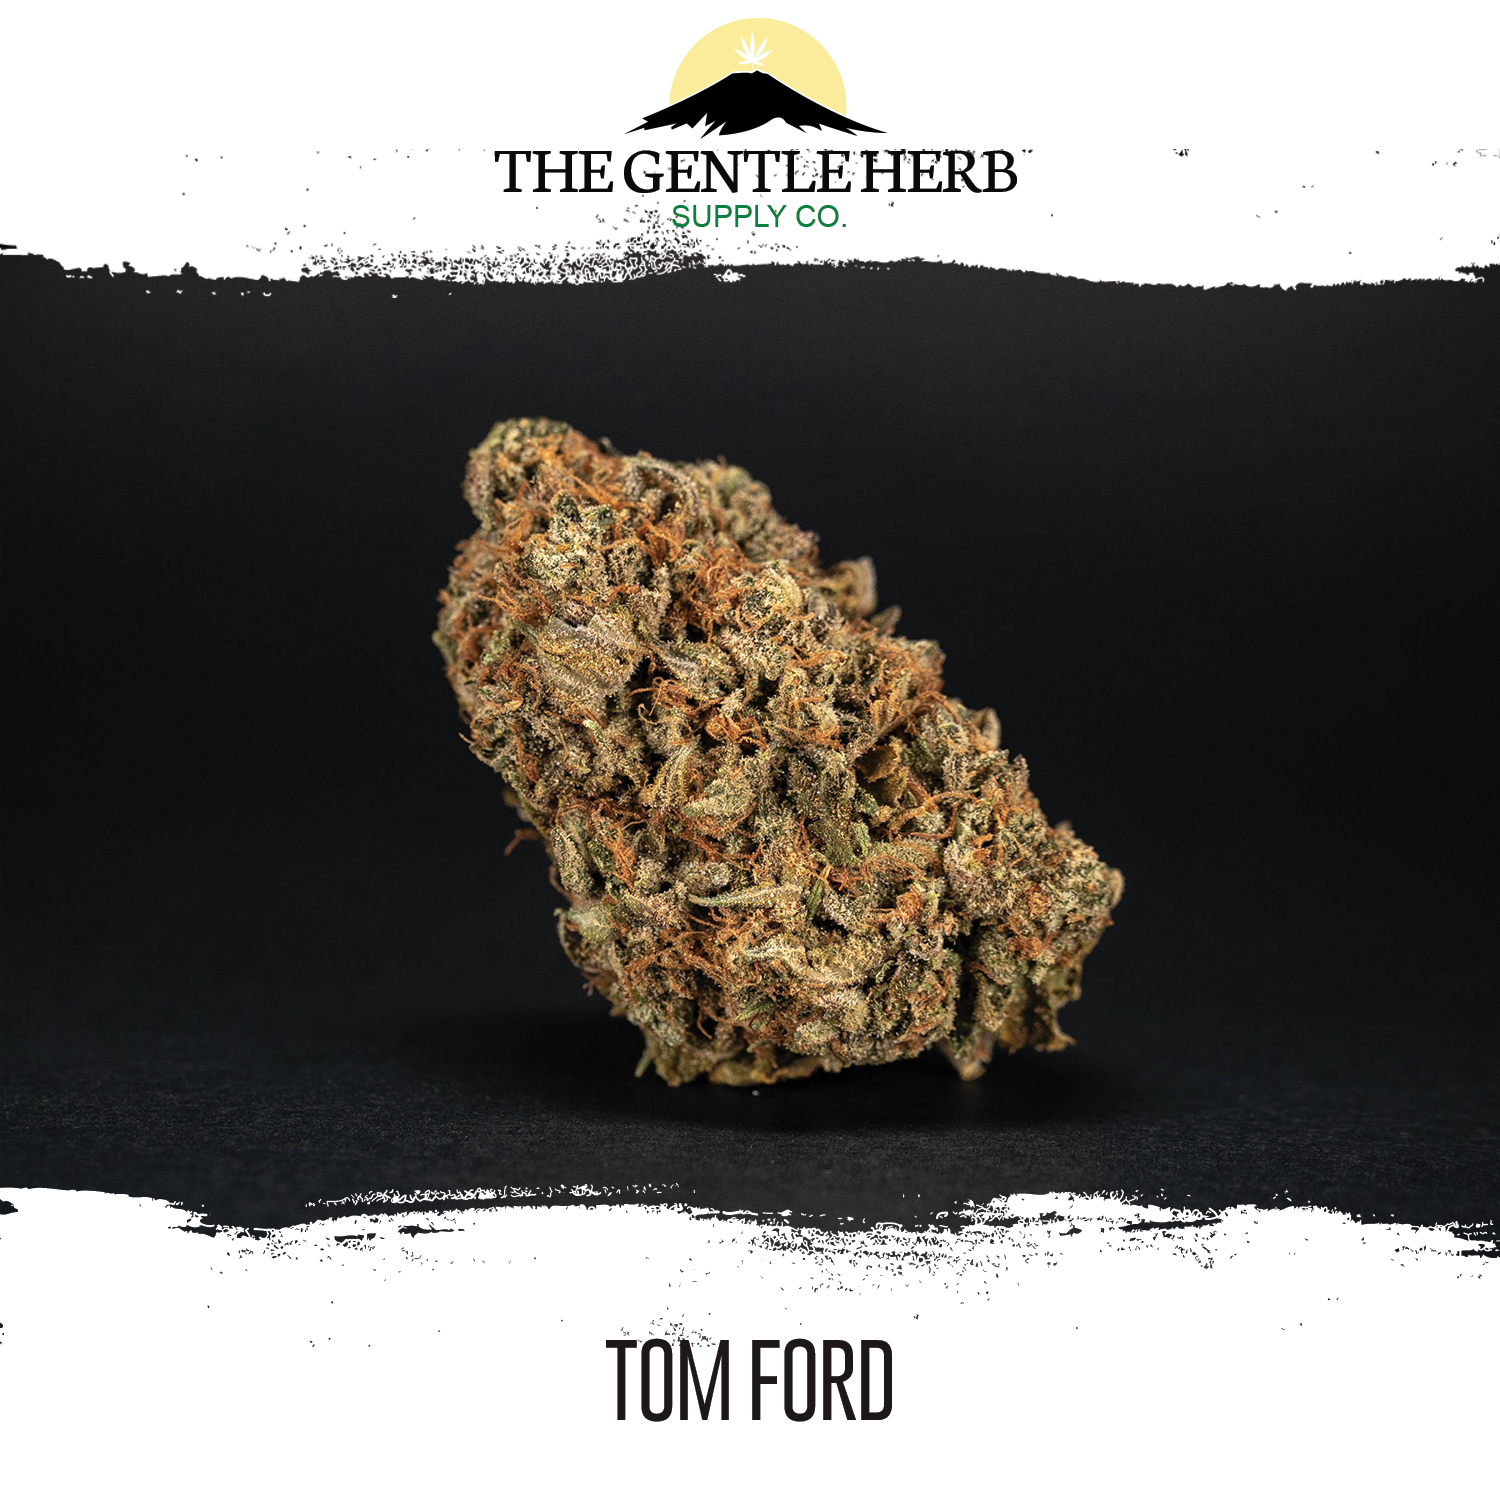 Tom Ford Pink by The Gentle Herb - Image © 2018 The Gentle Herb. All Rights Reserved.